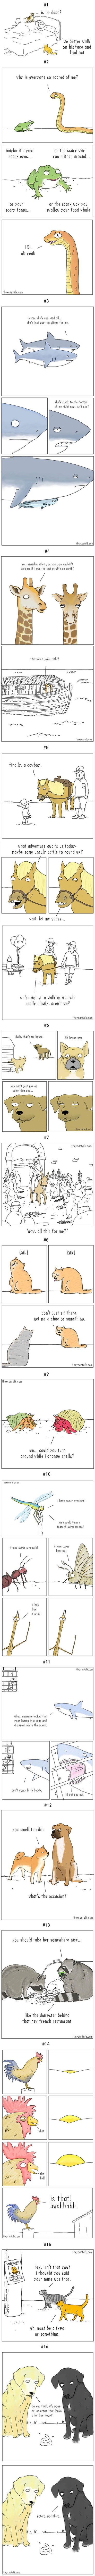 16 Comic Strips What Animals Would Say If They Could Talk (by Jimmy Craig) # comics